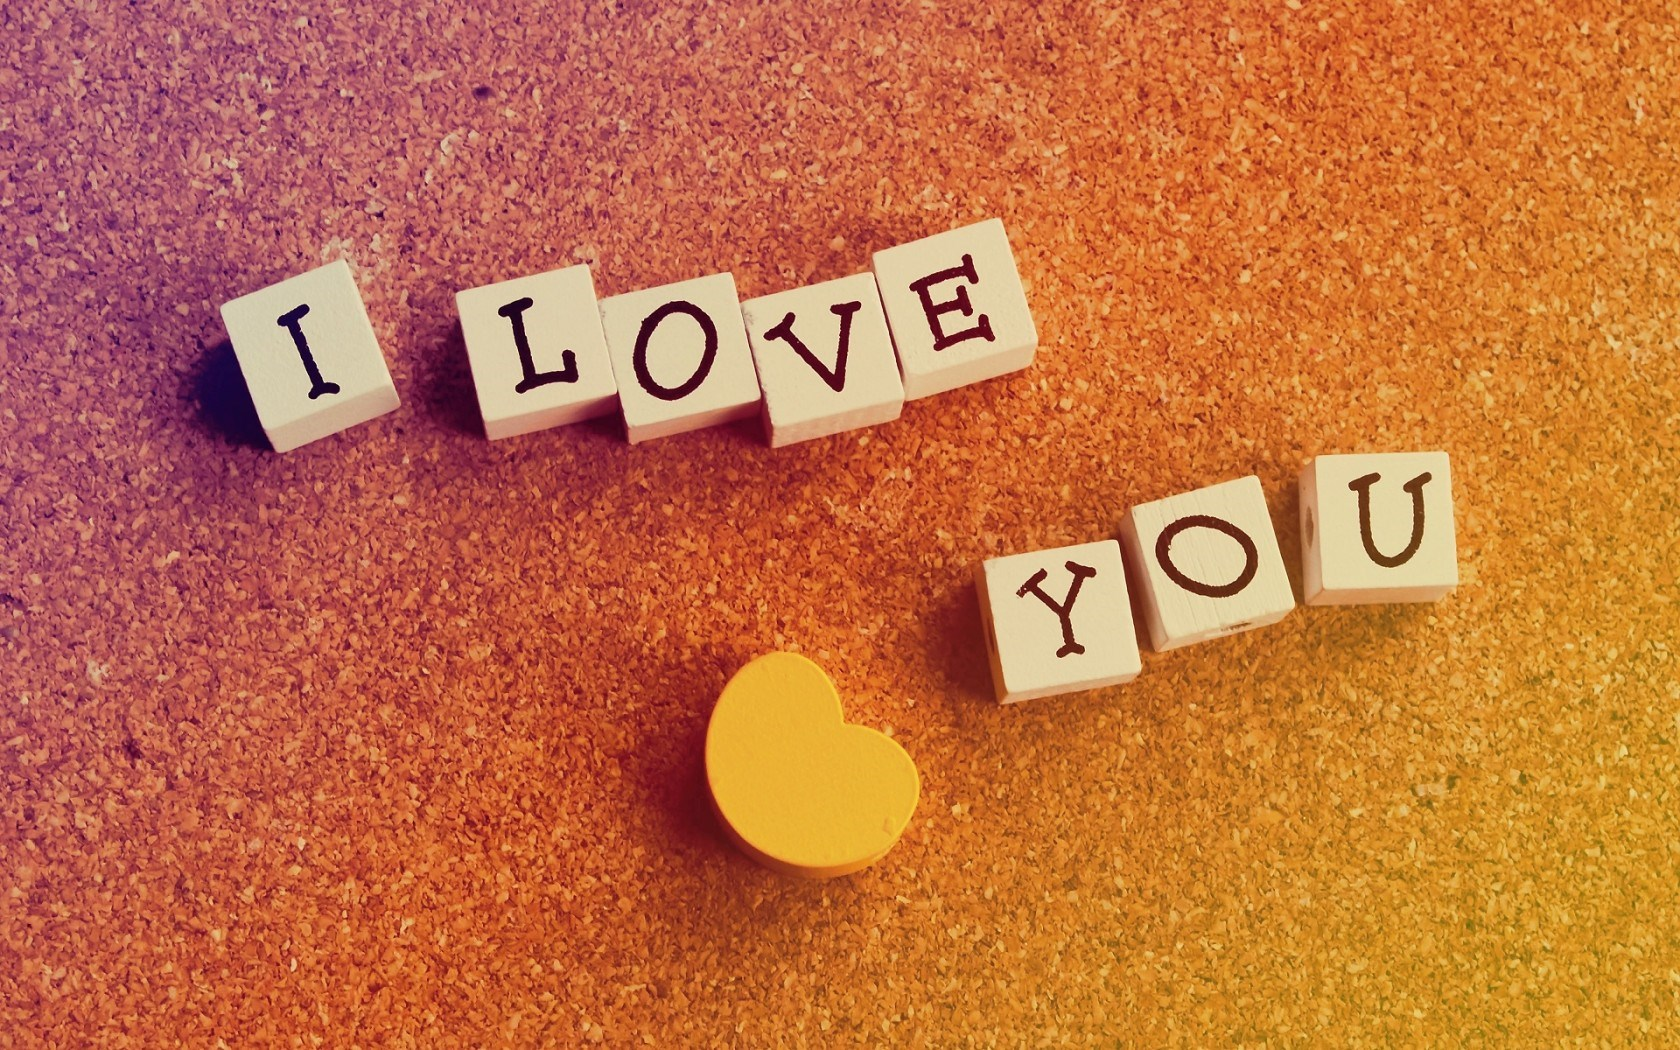 Desktop Wallpaper I Love You : I Love You Wallpapers HD A17 - HD Desktop Wallpapers 4k HD